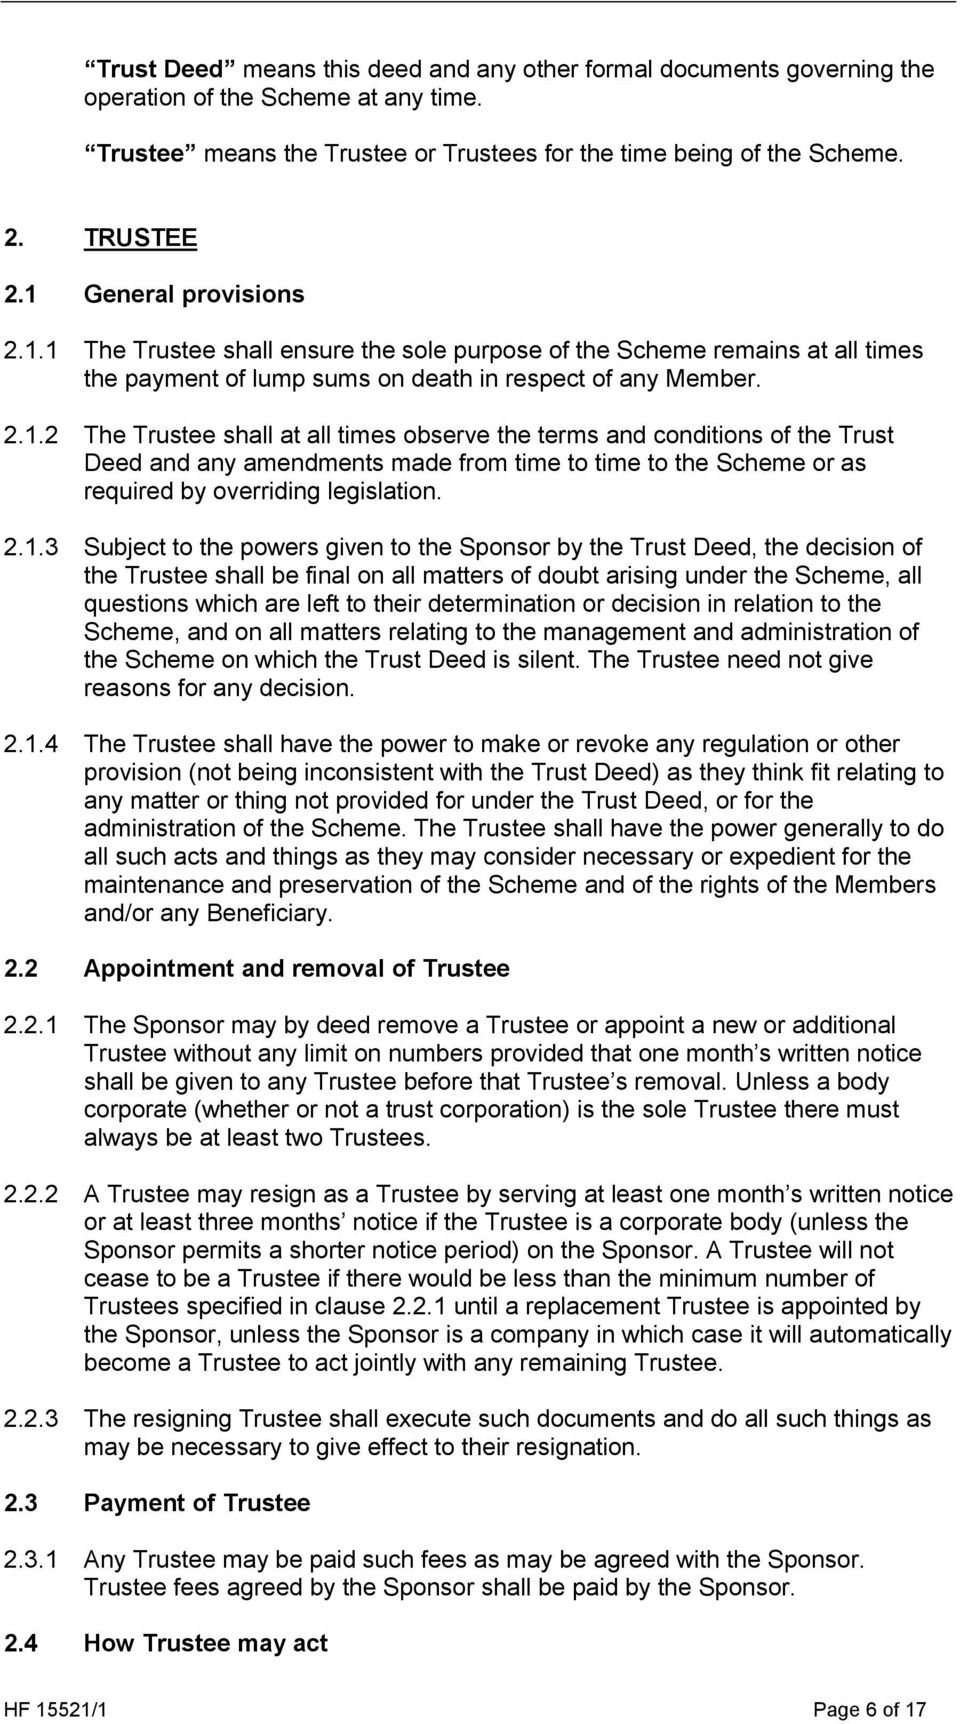 2.1.3 Subject to the powers given to the Sponsor by the Trust Deed, the decision of the Trustee shall be final on all matters of doubt arising under the Scheme, all questions which are left to their